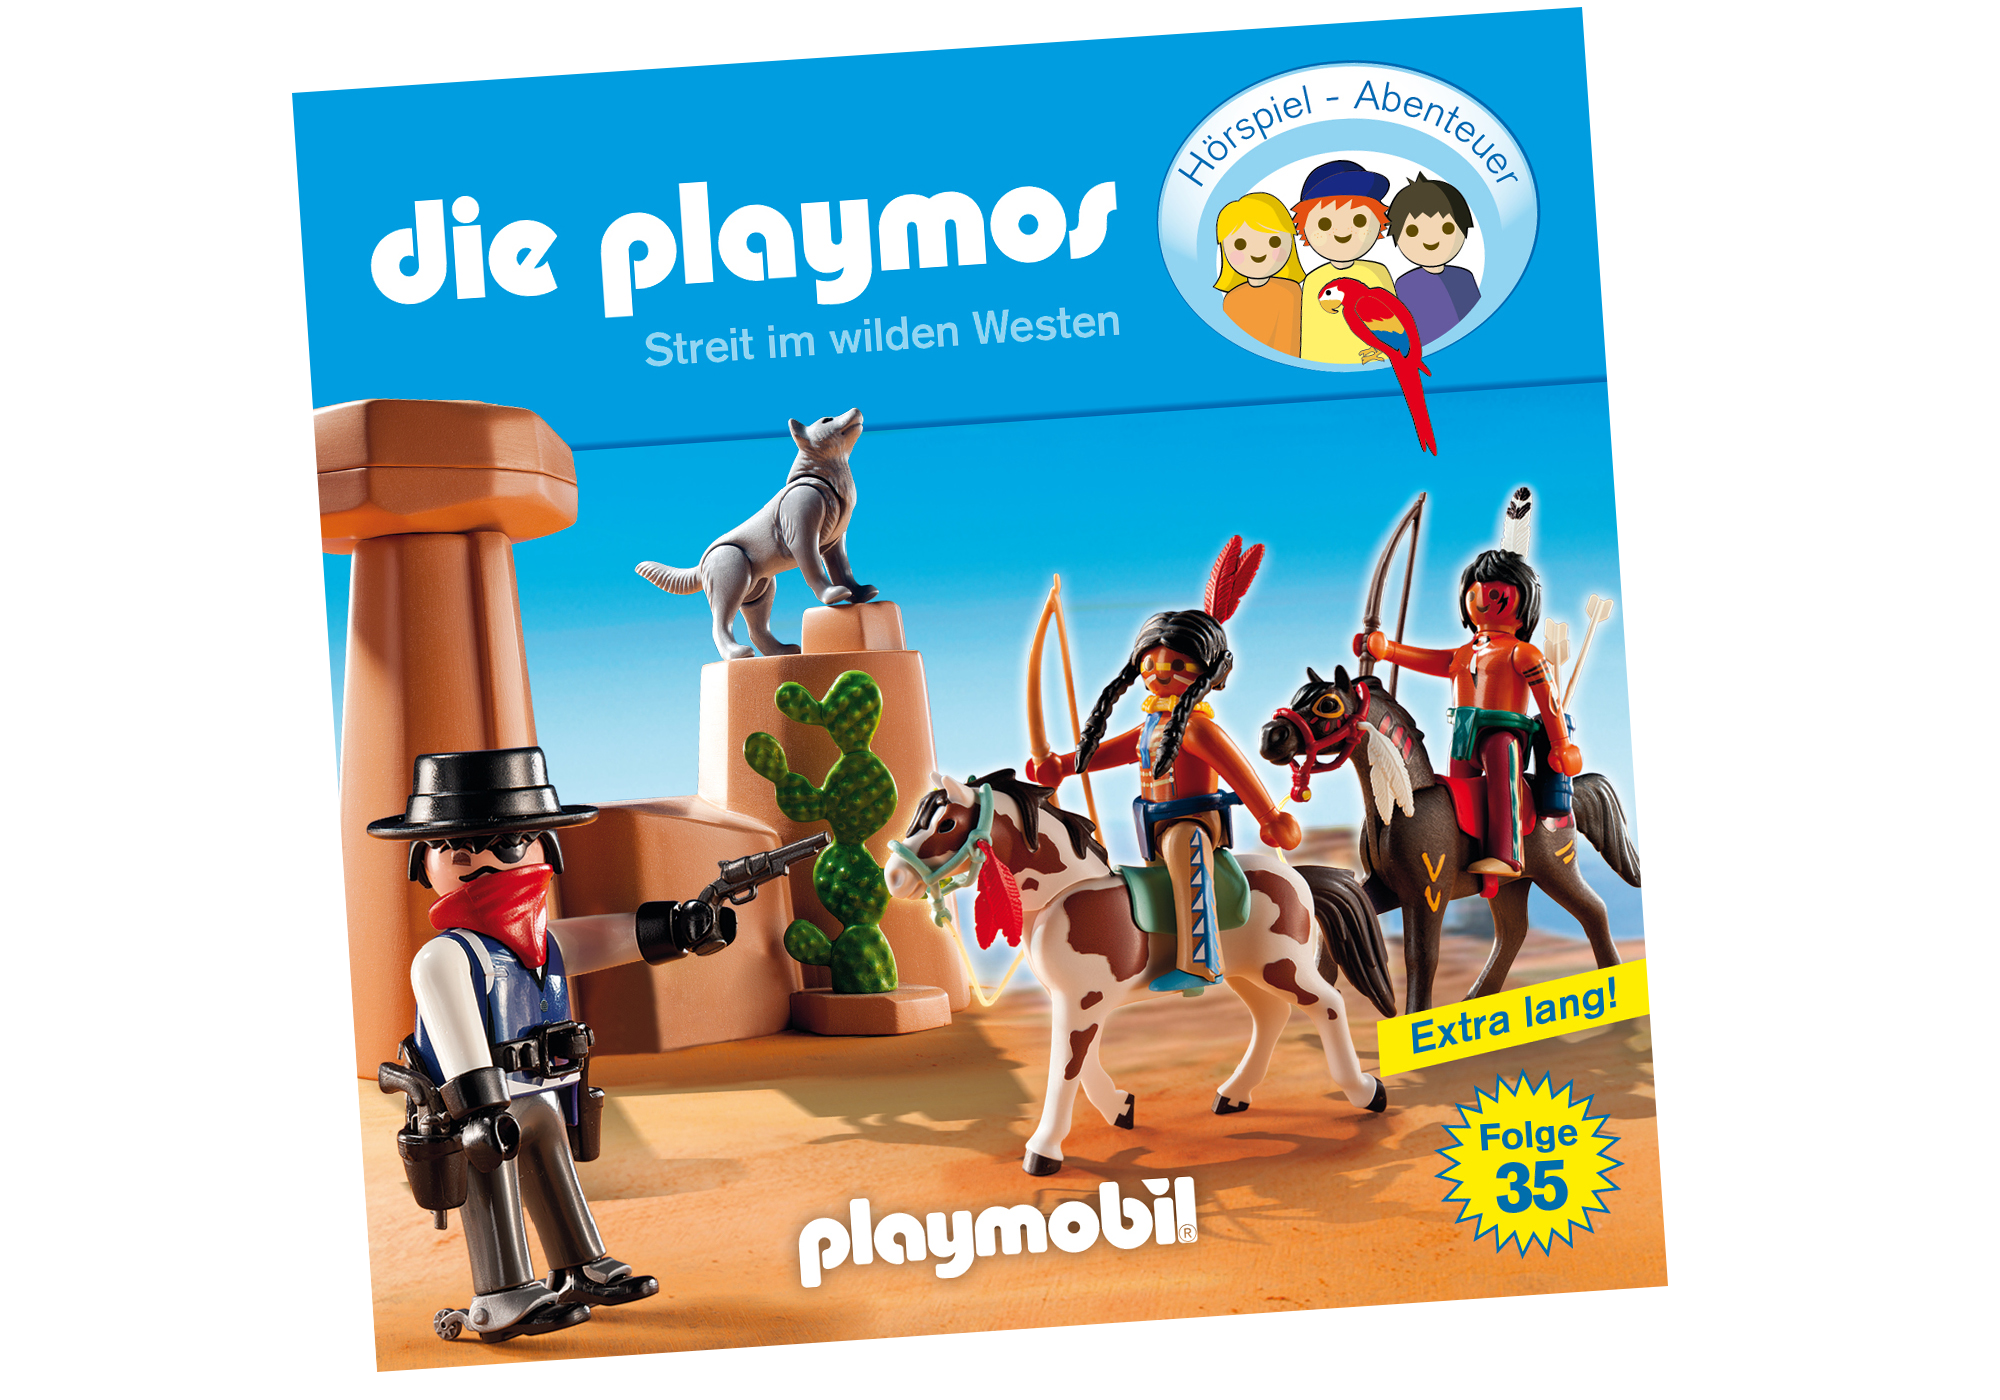 http://media.playmobil.com/i/playmobil/80446_product_detail/Streit im wilden Westen (35) - CD